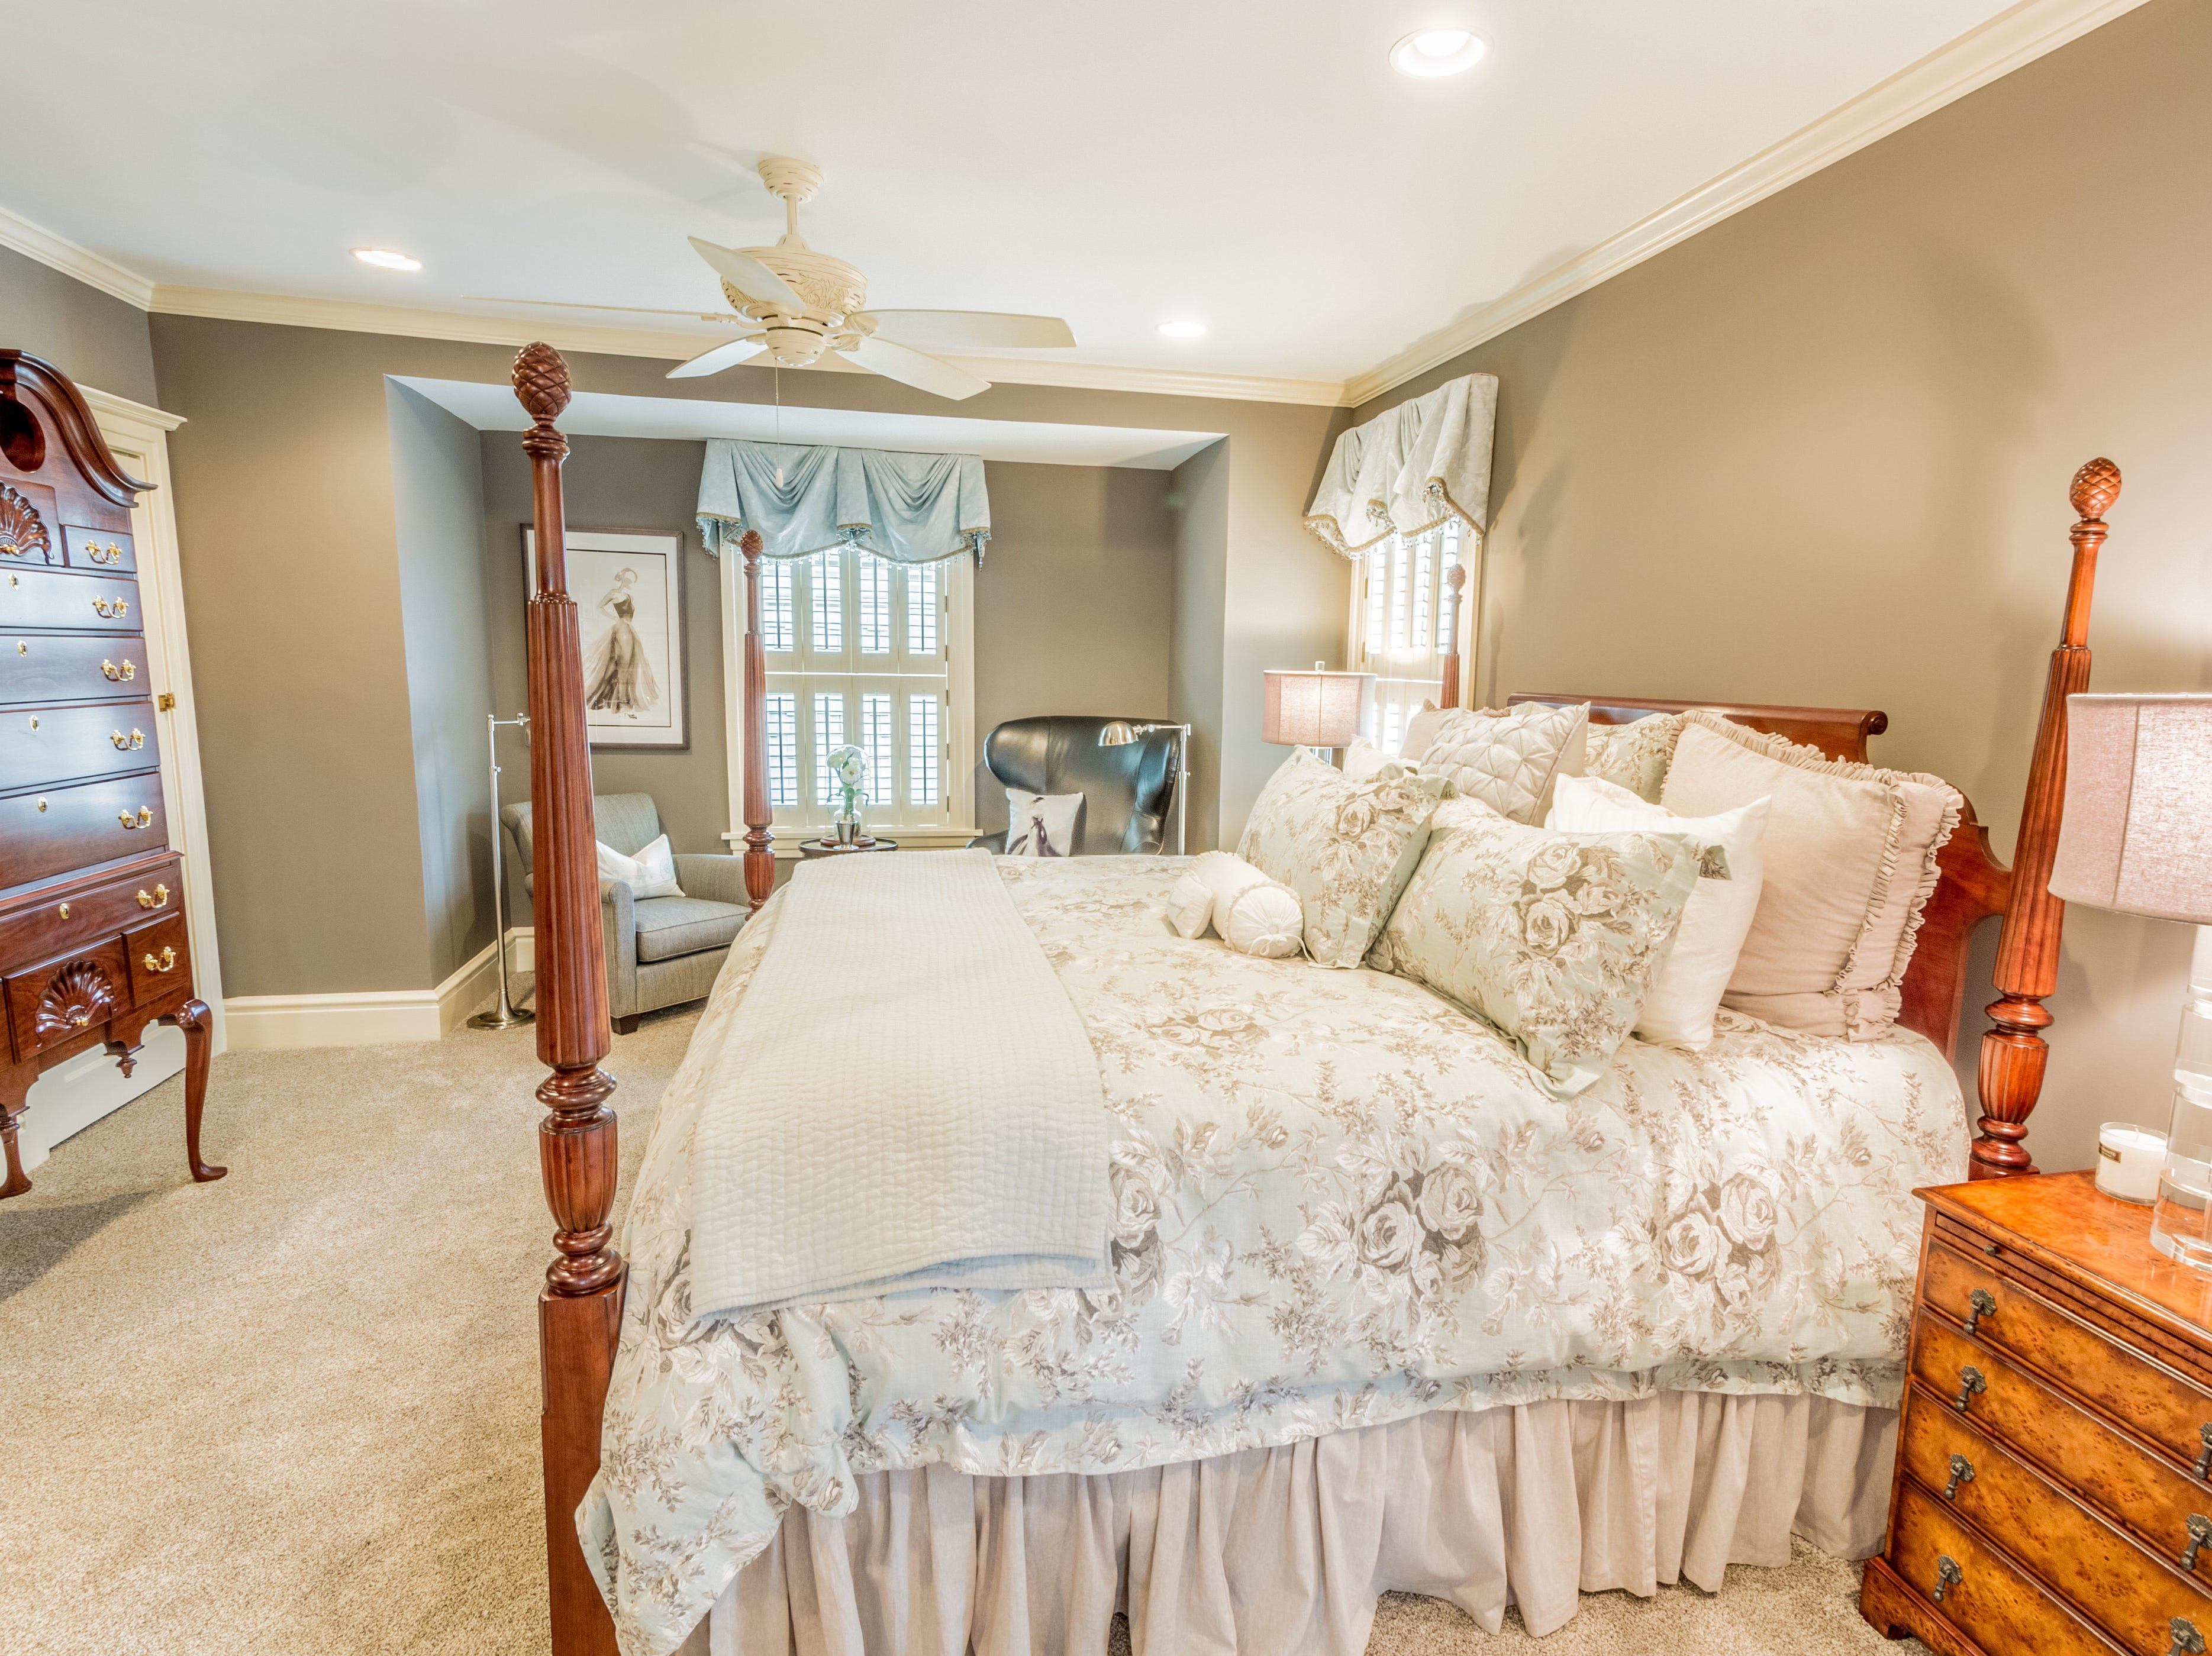 The spacious master bedroomin the house at 1100 North Rodney St. offers recessed lighting.